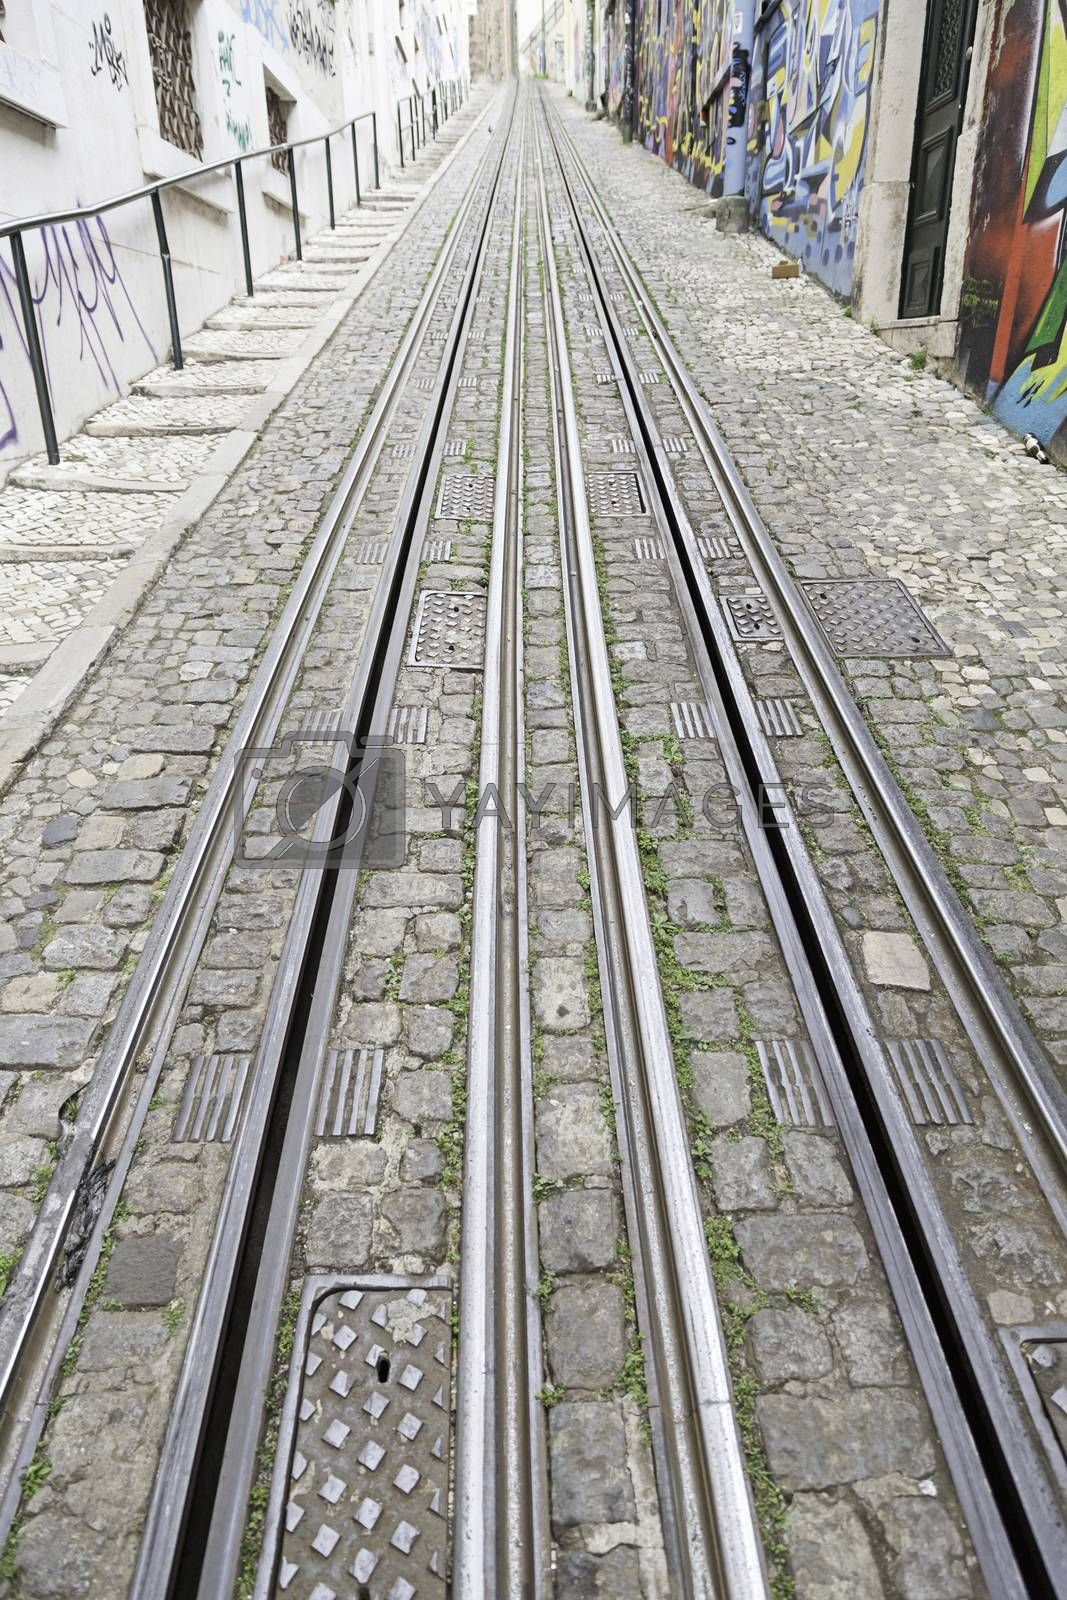 Tram tracks in the city, a detail of public transport in the city of Lisbon, former public transport